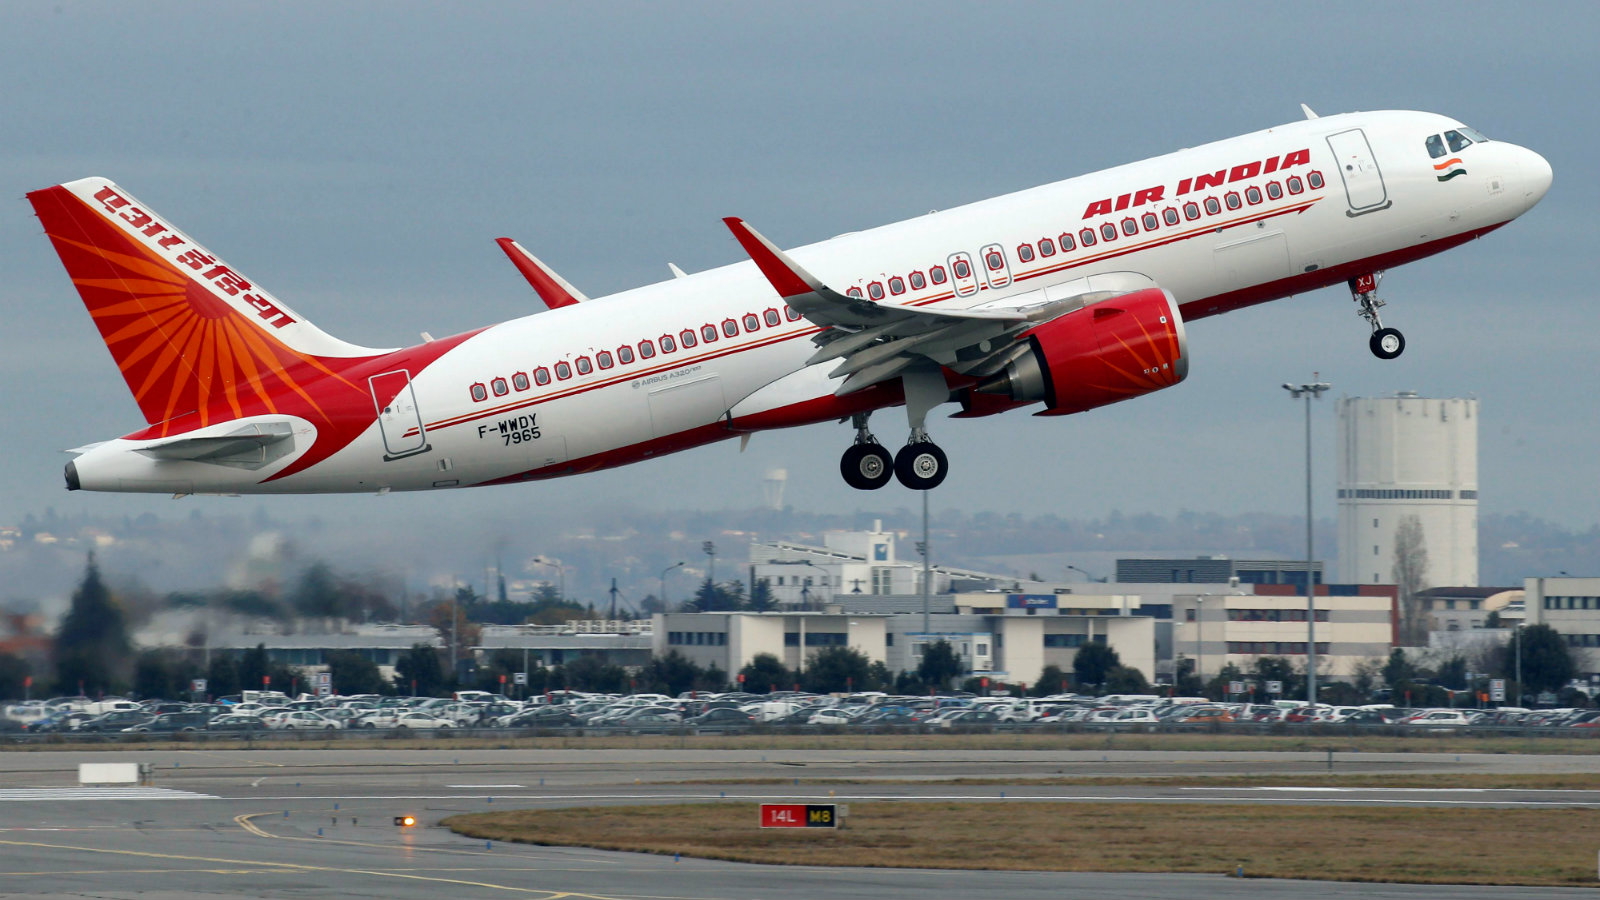 'Want a window seat?' This Indian airline introduces seat-selection fee